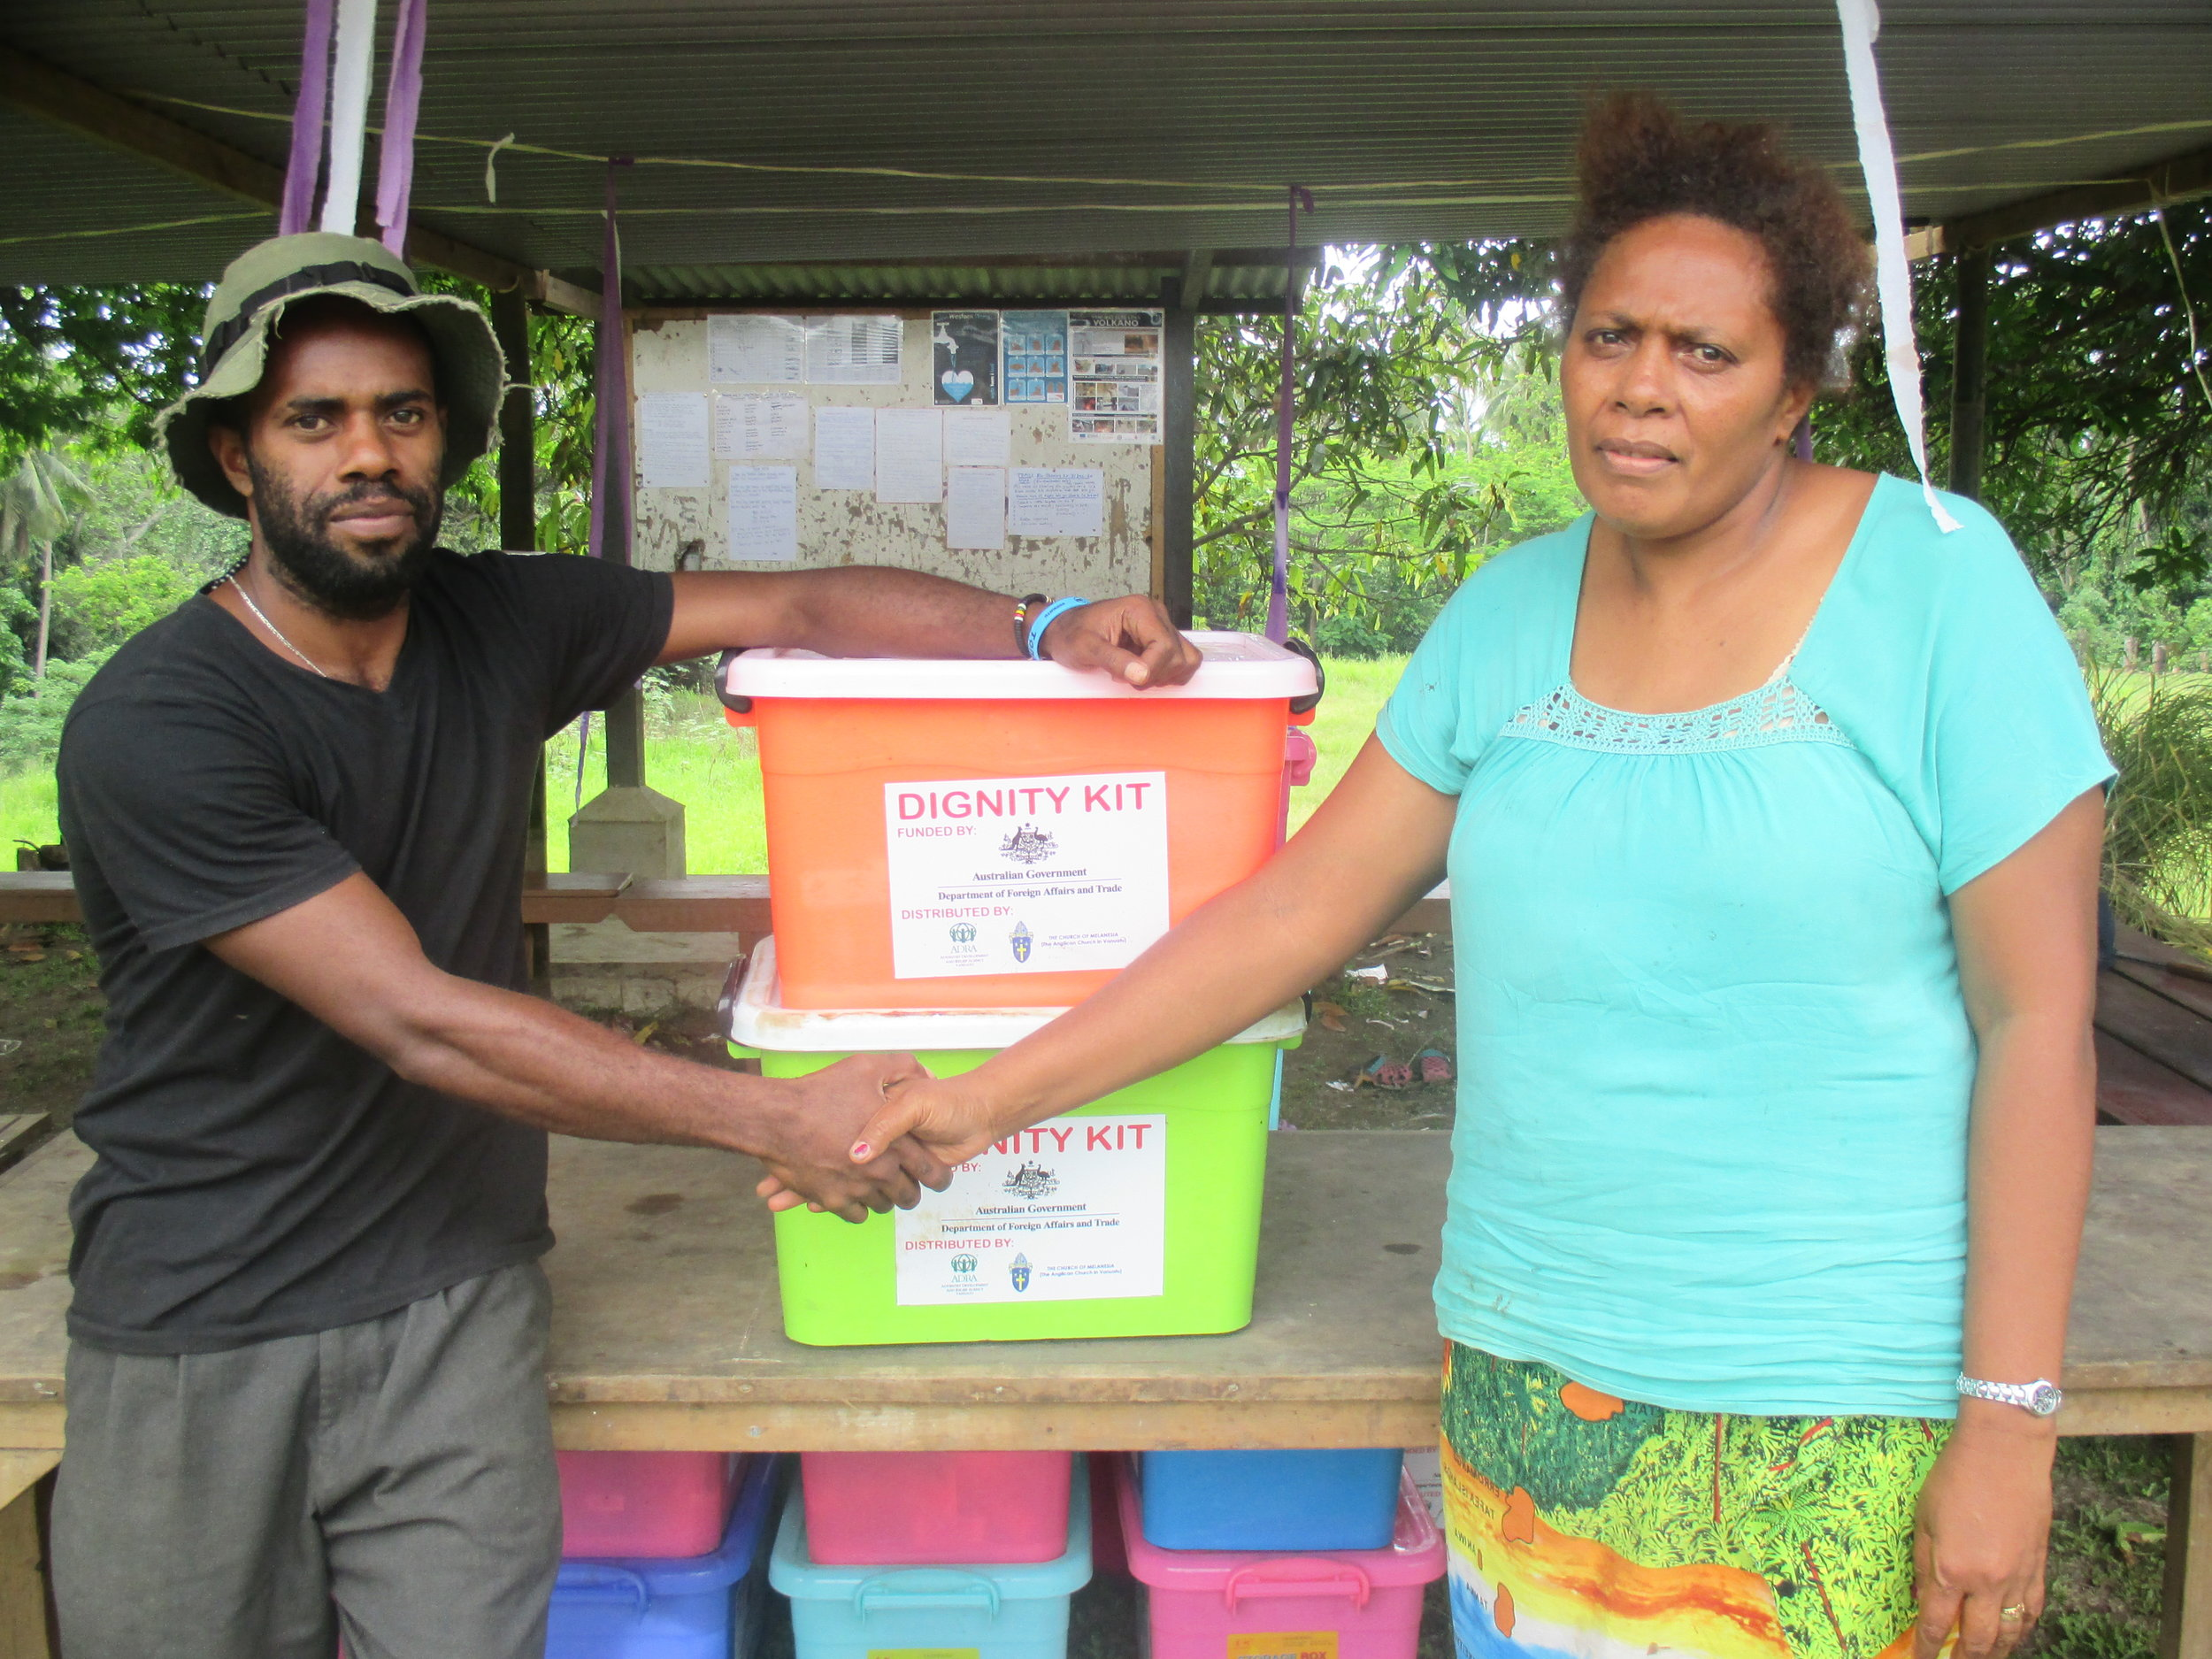 Dignity kits distributed by CAN DO partners in Vanuatu © Caritas Australia/CAN DO